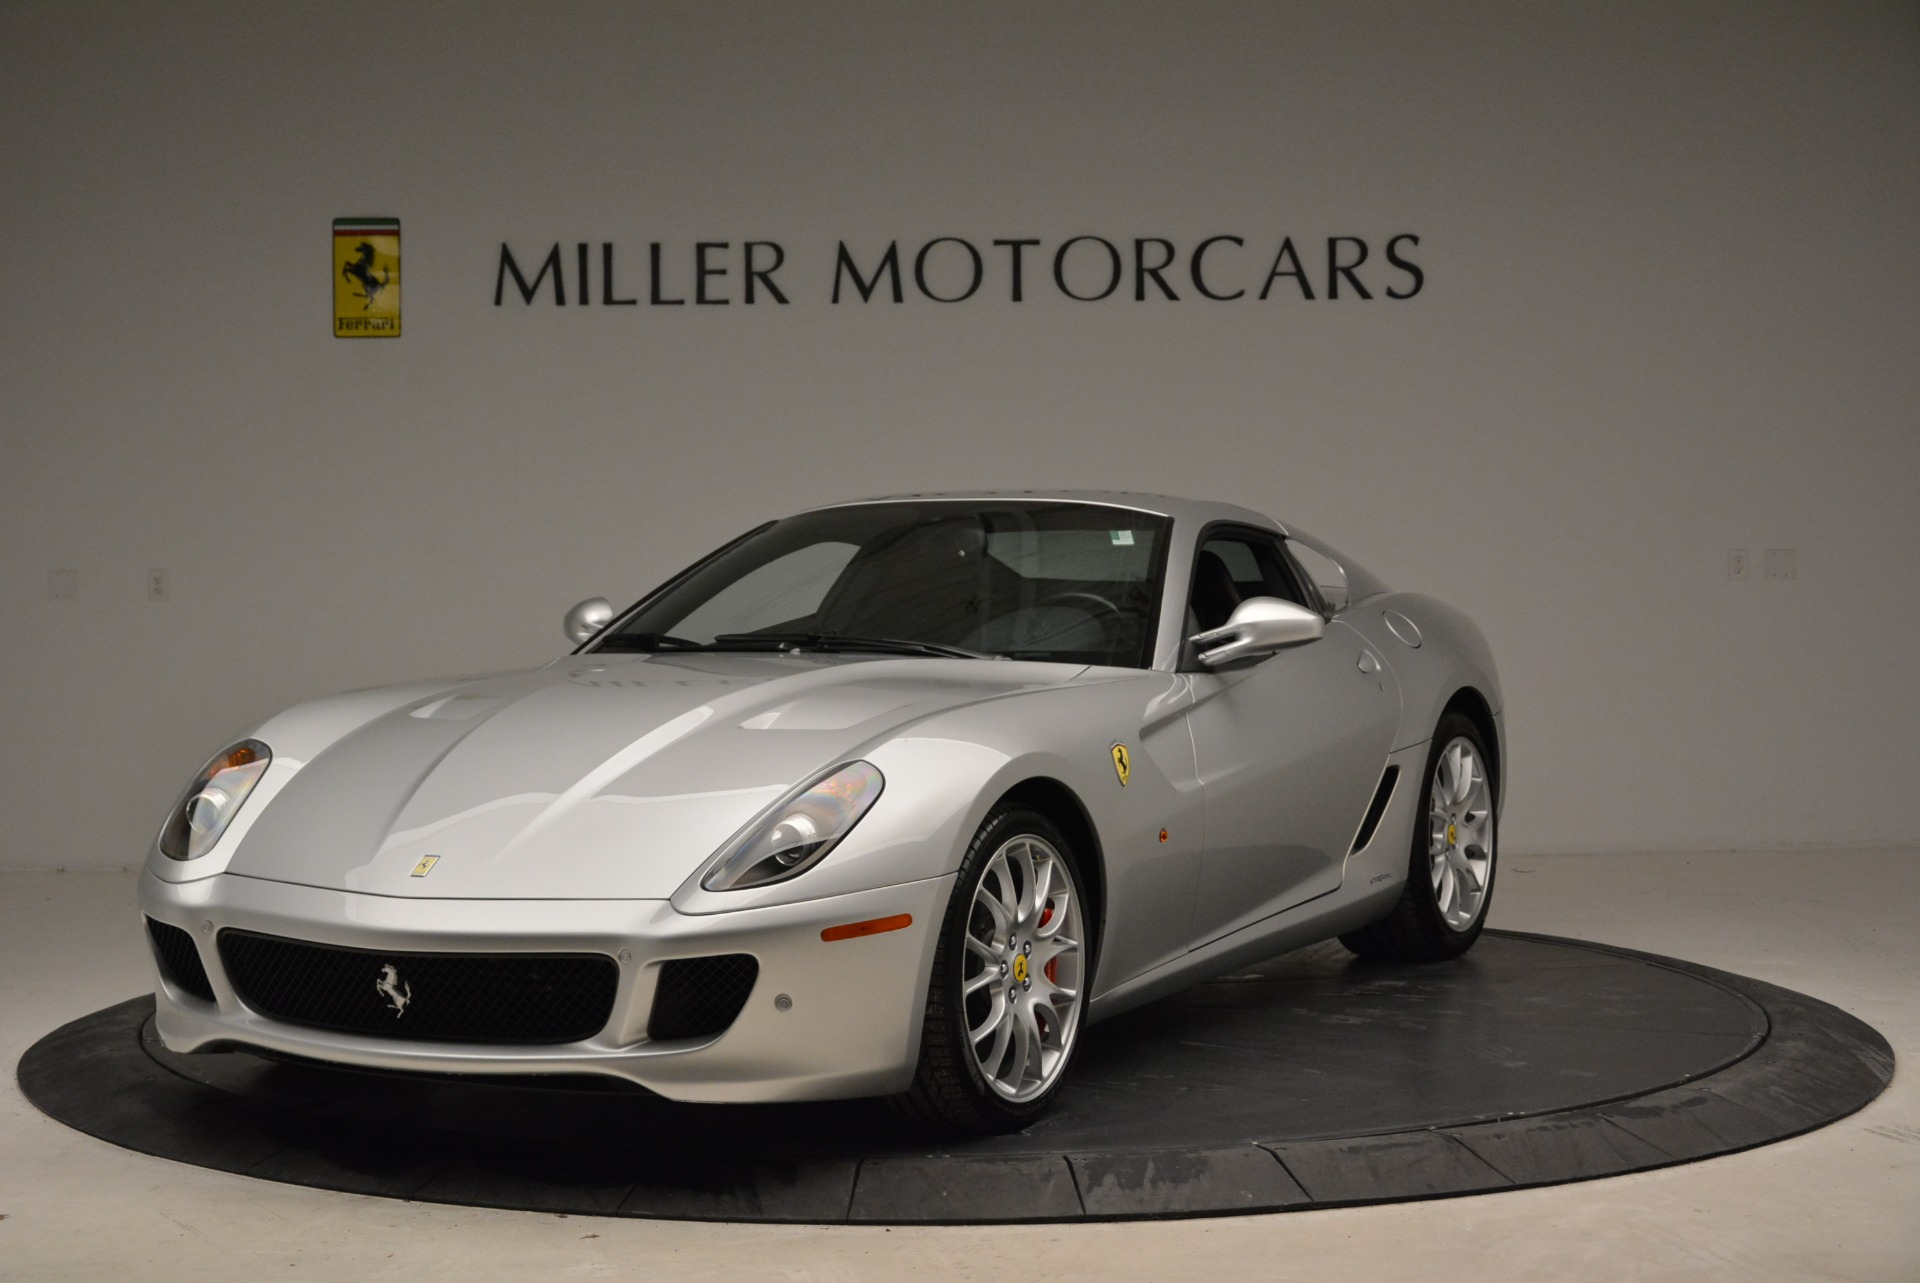 Used 2010 Ferrari 599 GTB Fiorano for sale Sold at Aston Martin of Greenwich in Greenwich CT 06830 1